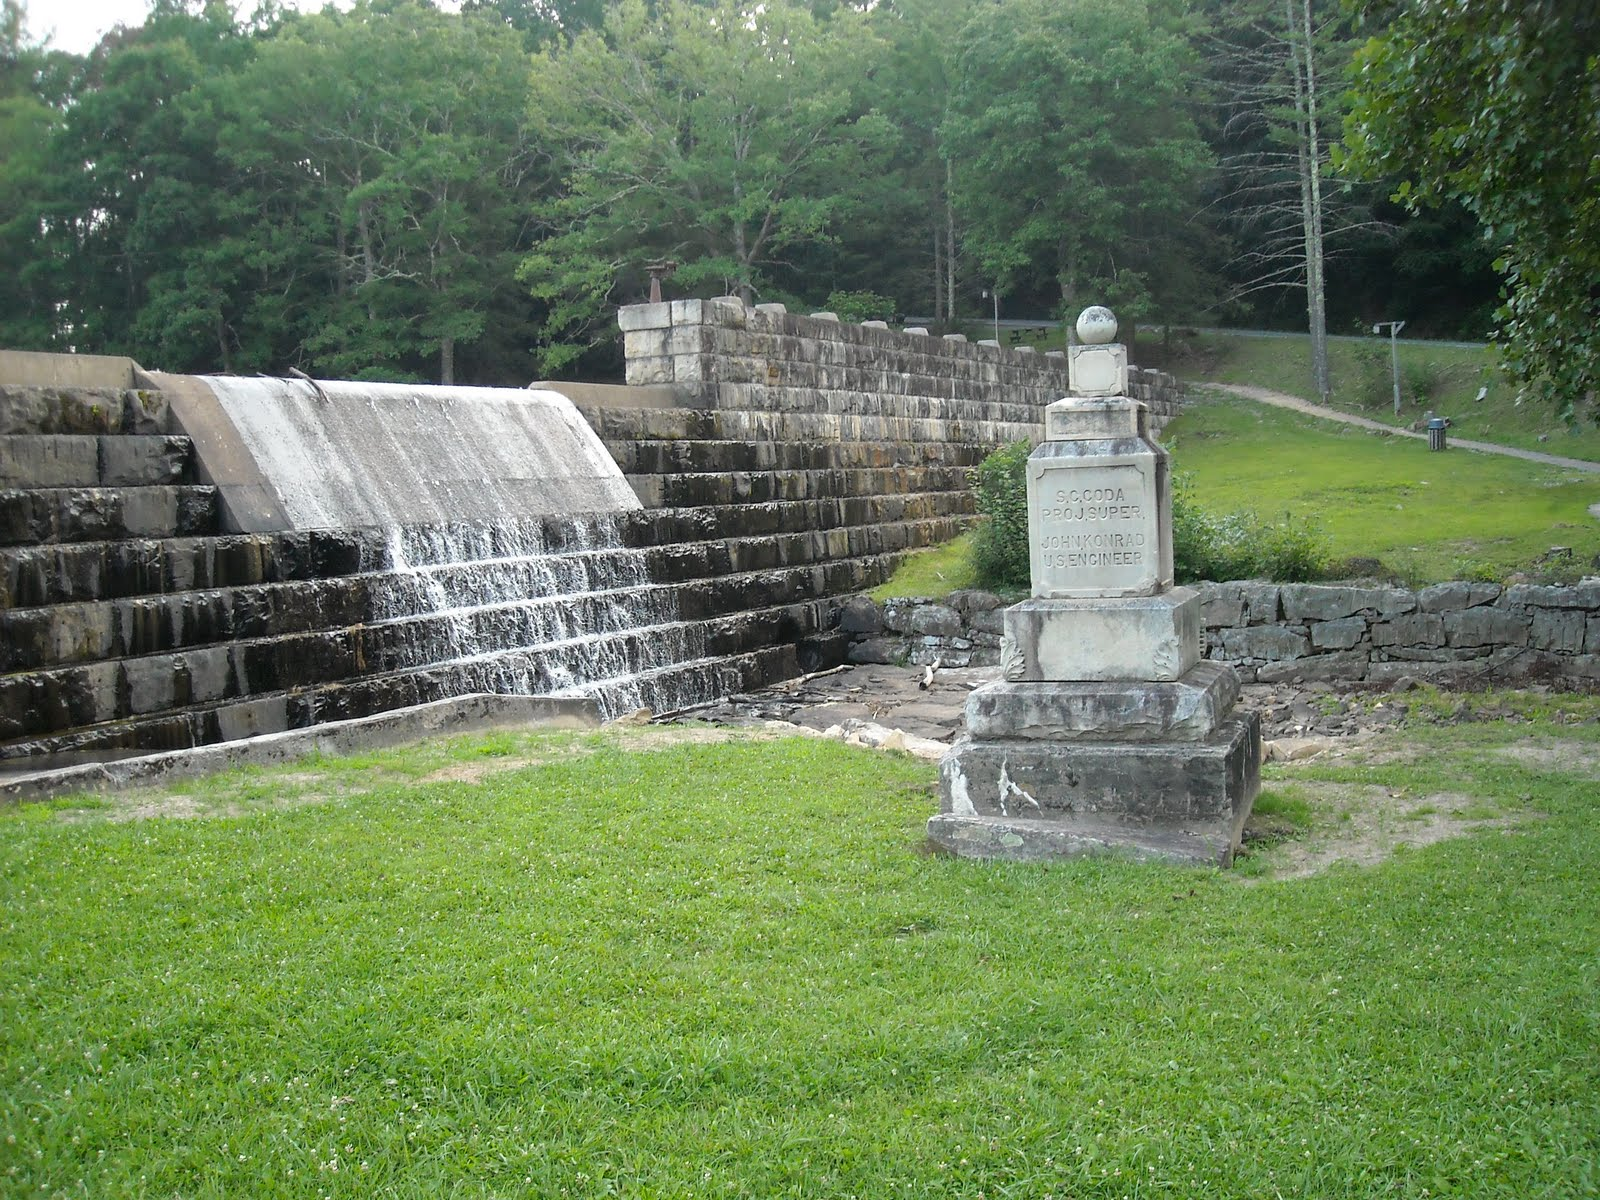 The dam and the monument to the men who built the camp from CCC Raleigh. Attribution: Tom Hoffman